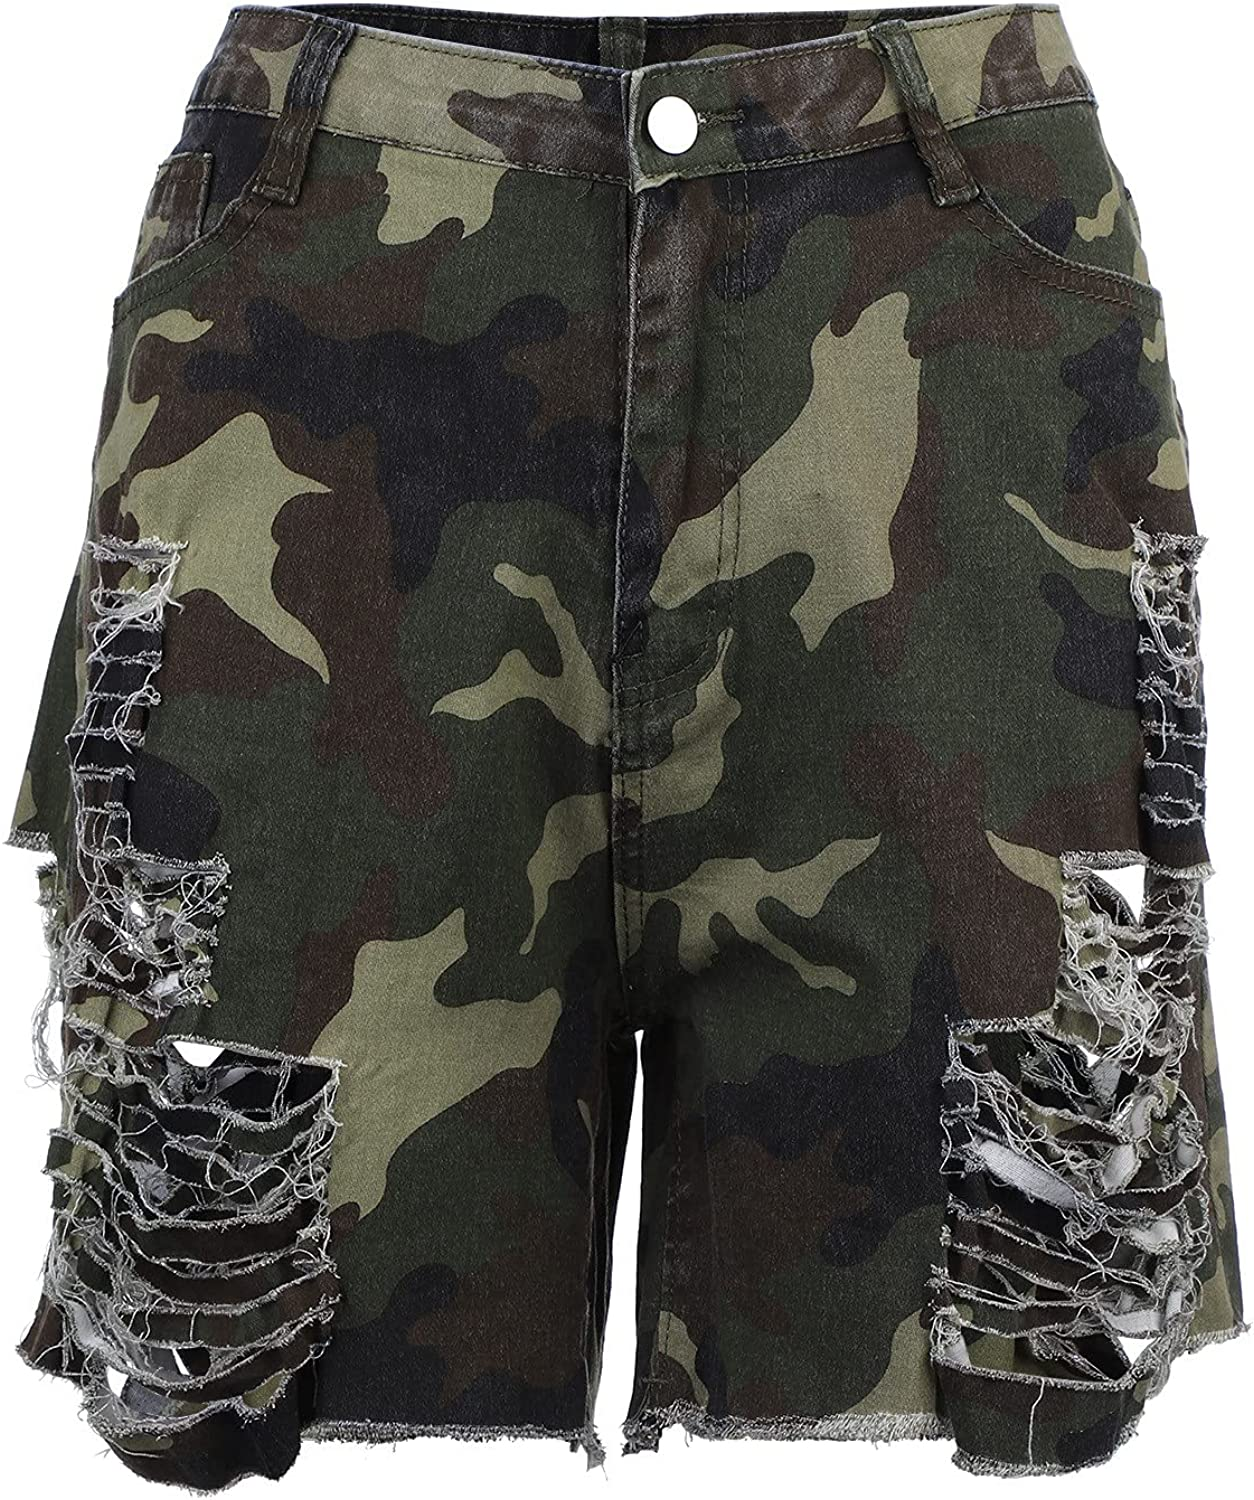 Jeans Pant for Women, Ladies All-Match Sexy Cut-Out Hollow Camouflage Denim Shorts